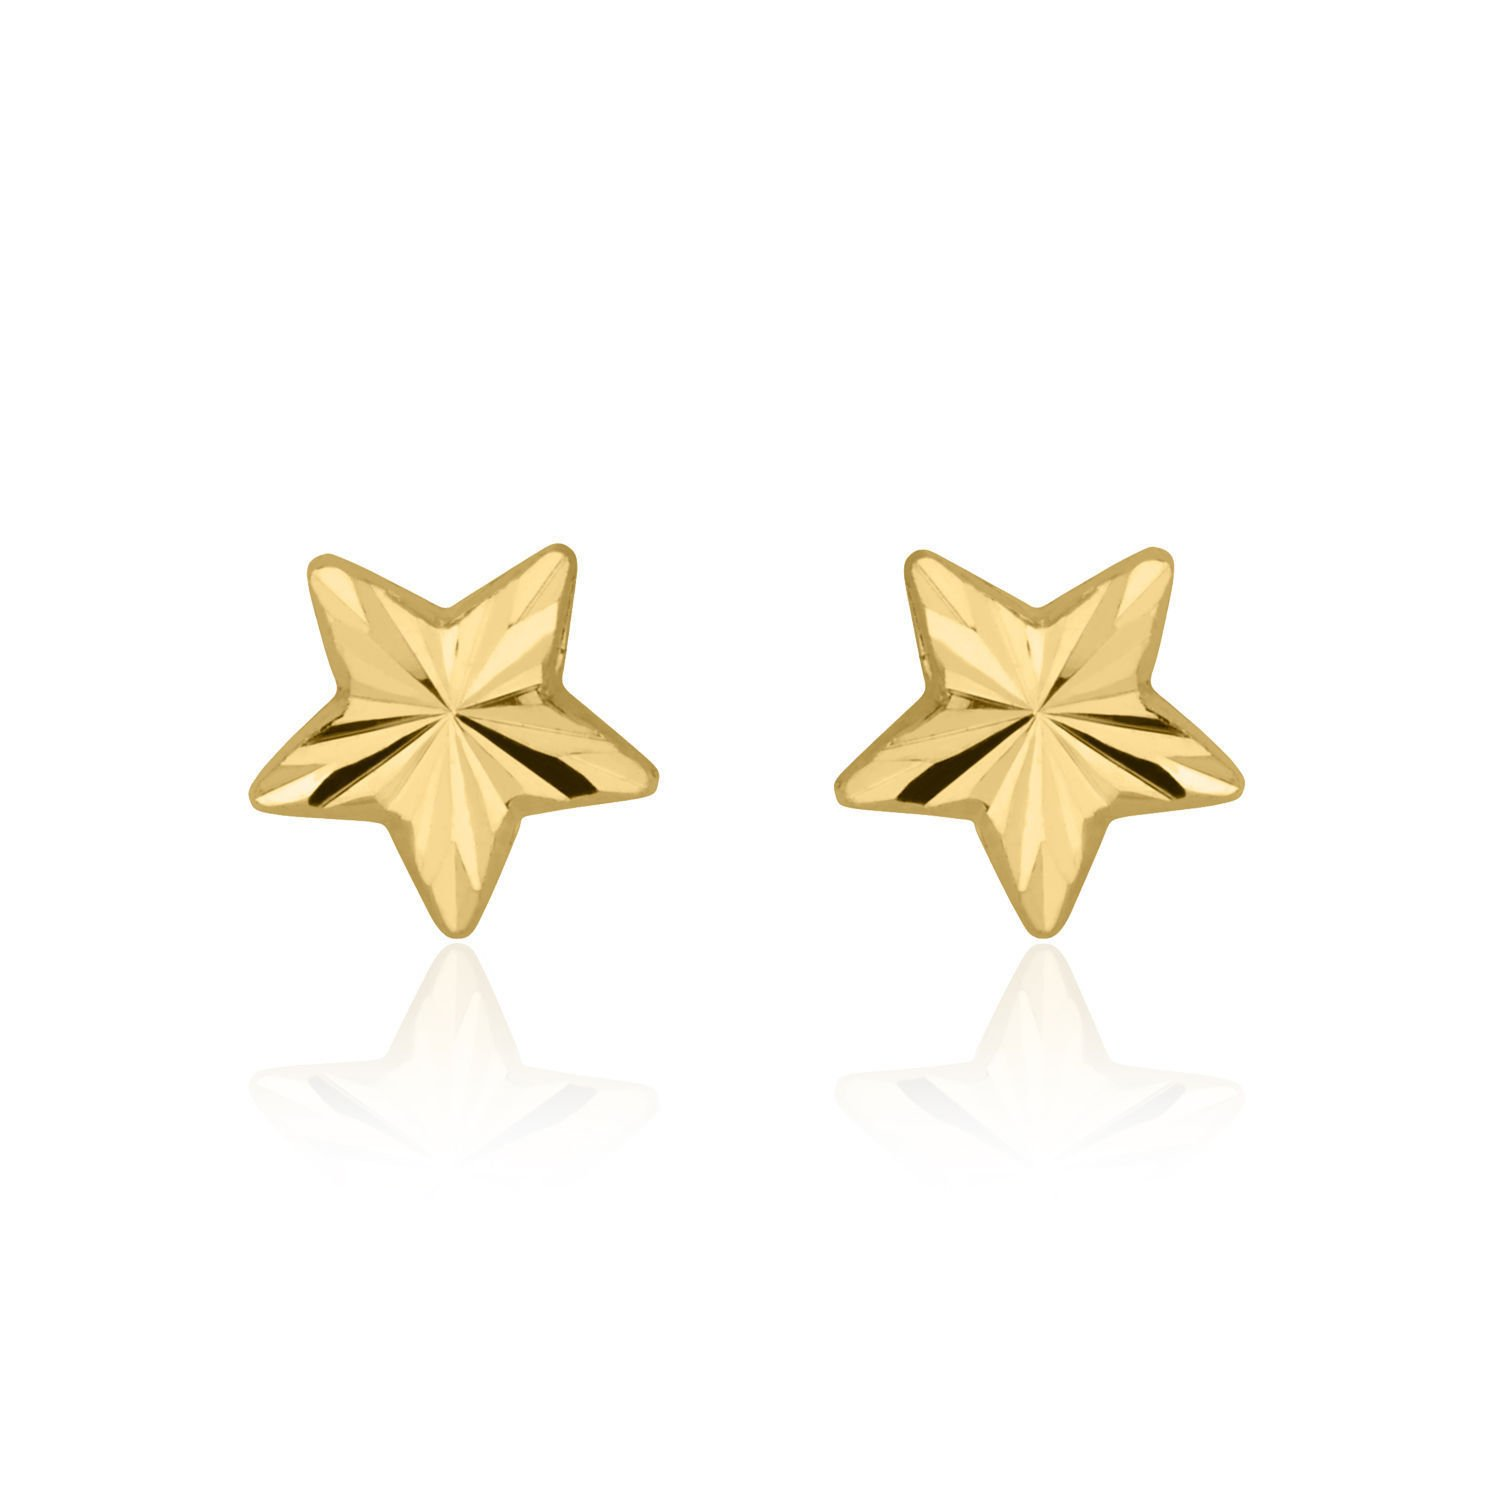 14K Solid Yellow Gold Star Screw Back Stud Earrings for Teens and Women Kids Gift Children